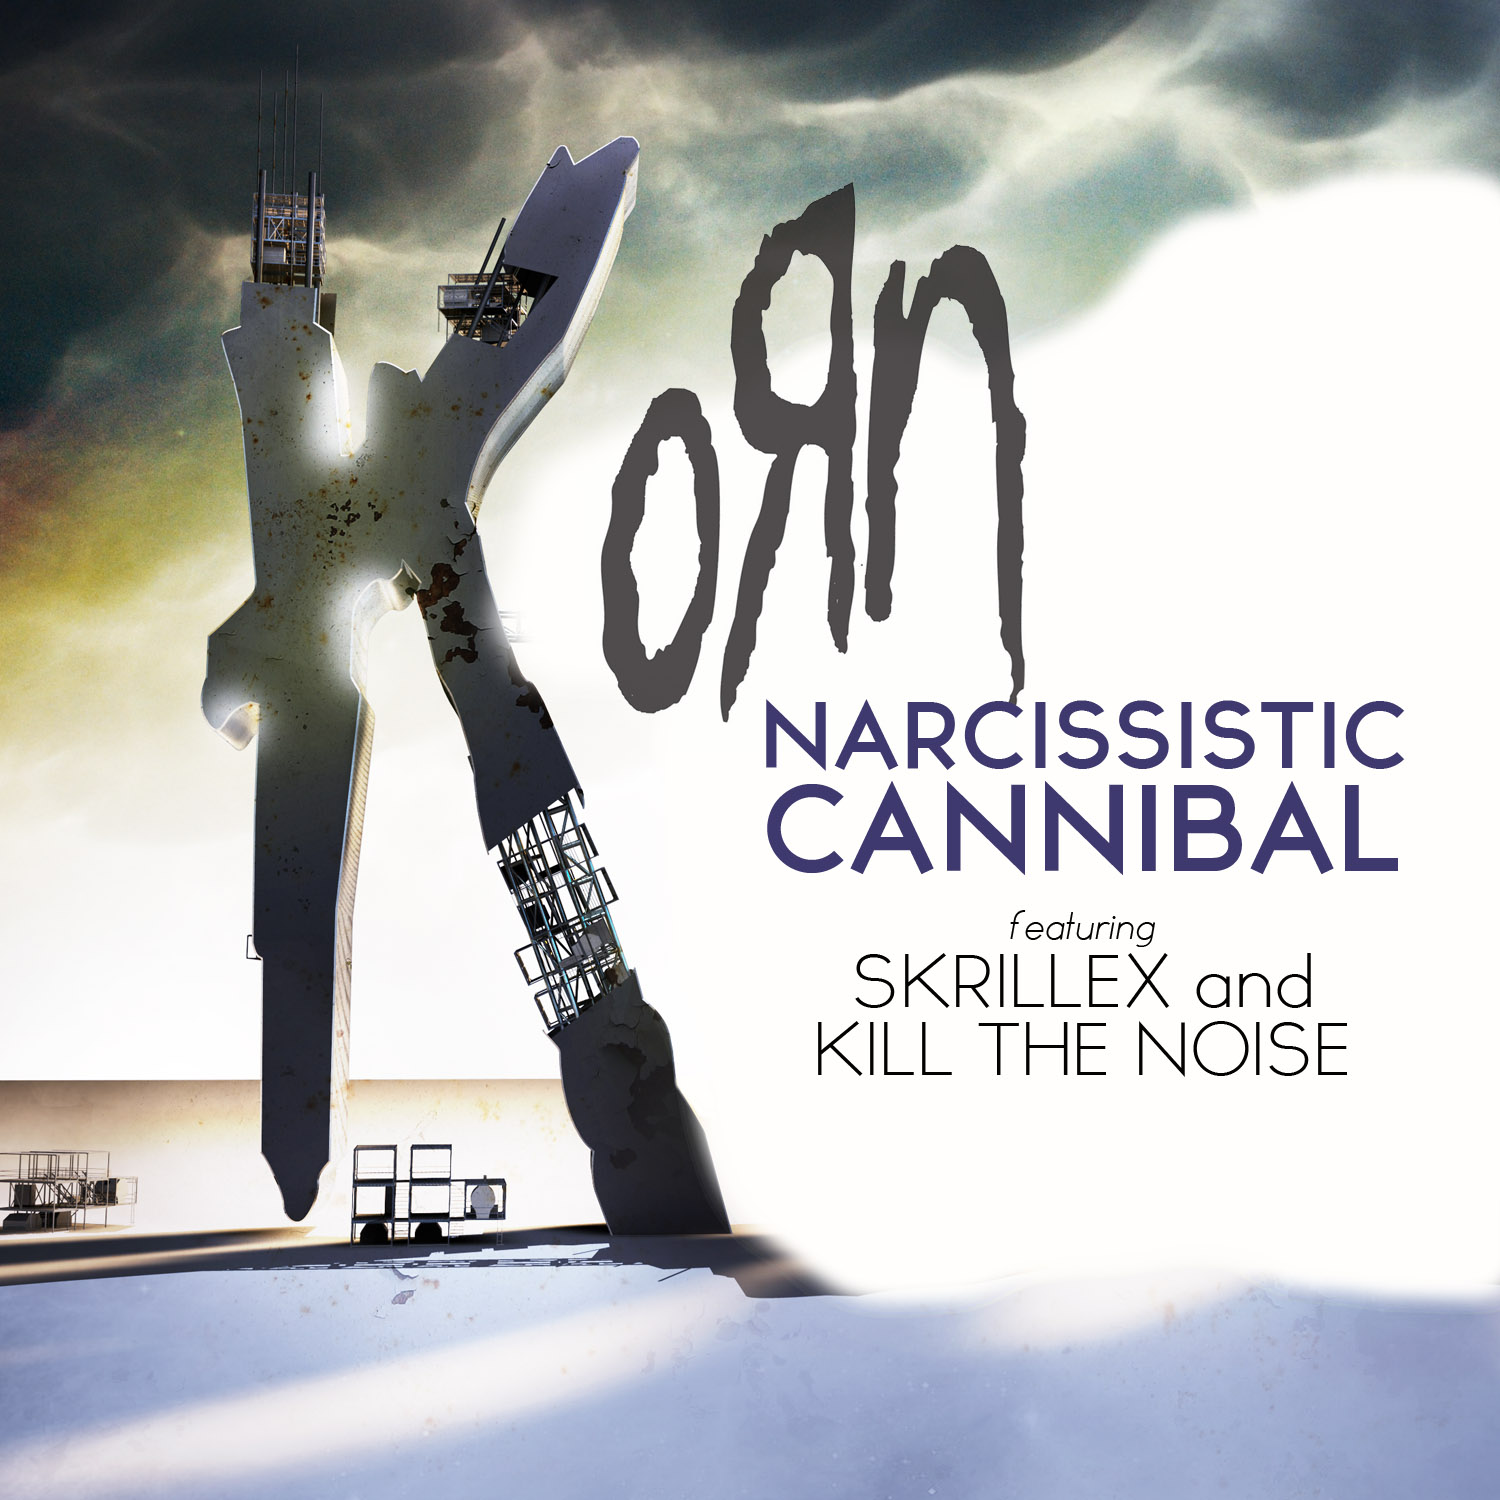 Korn – Narcissistic Cannibal (feat. Skrillex & Kill The Noise)